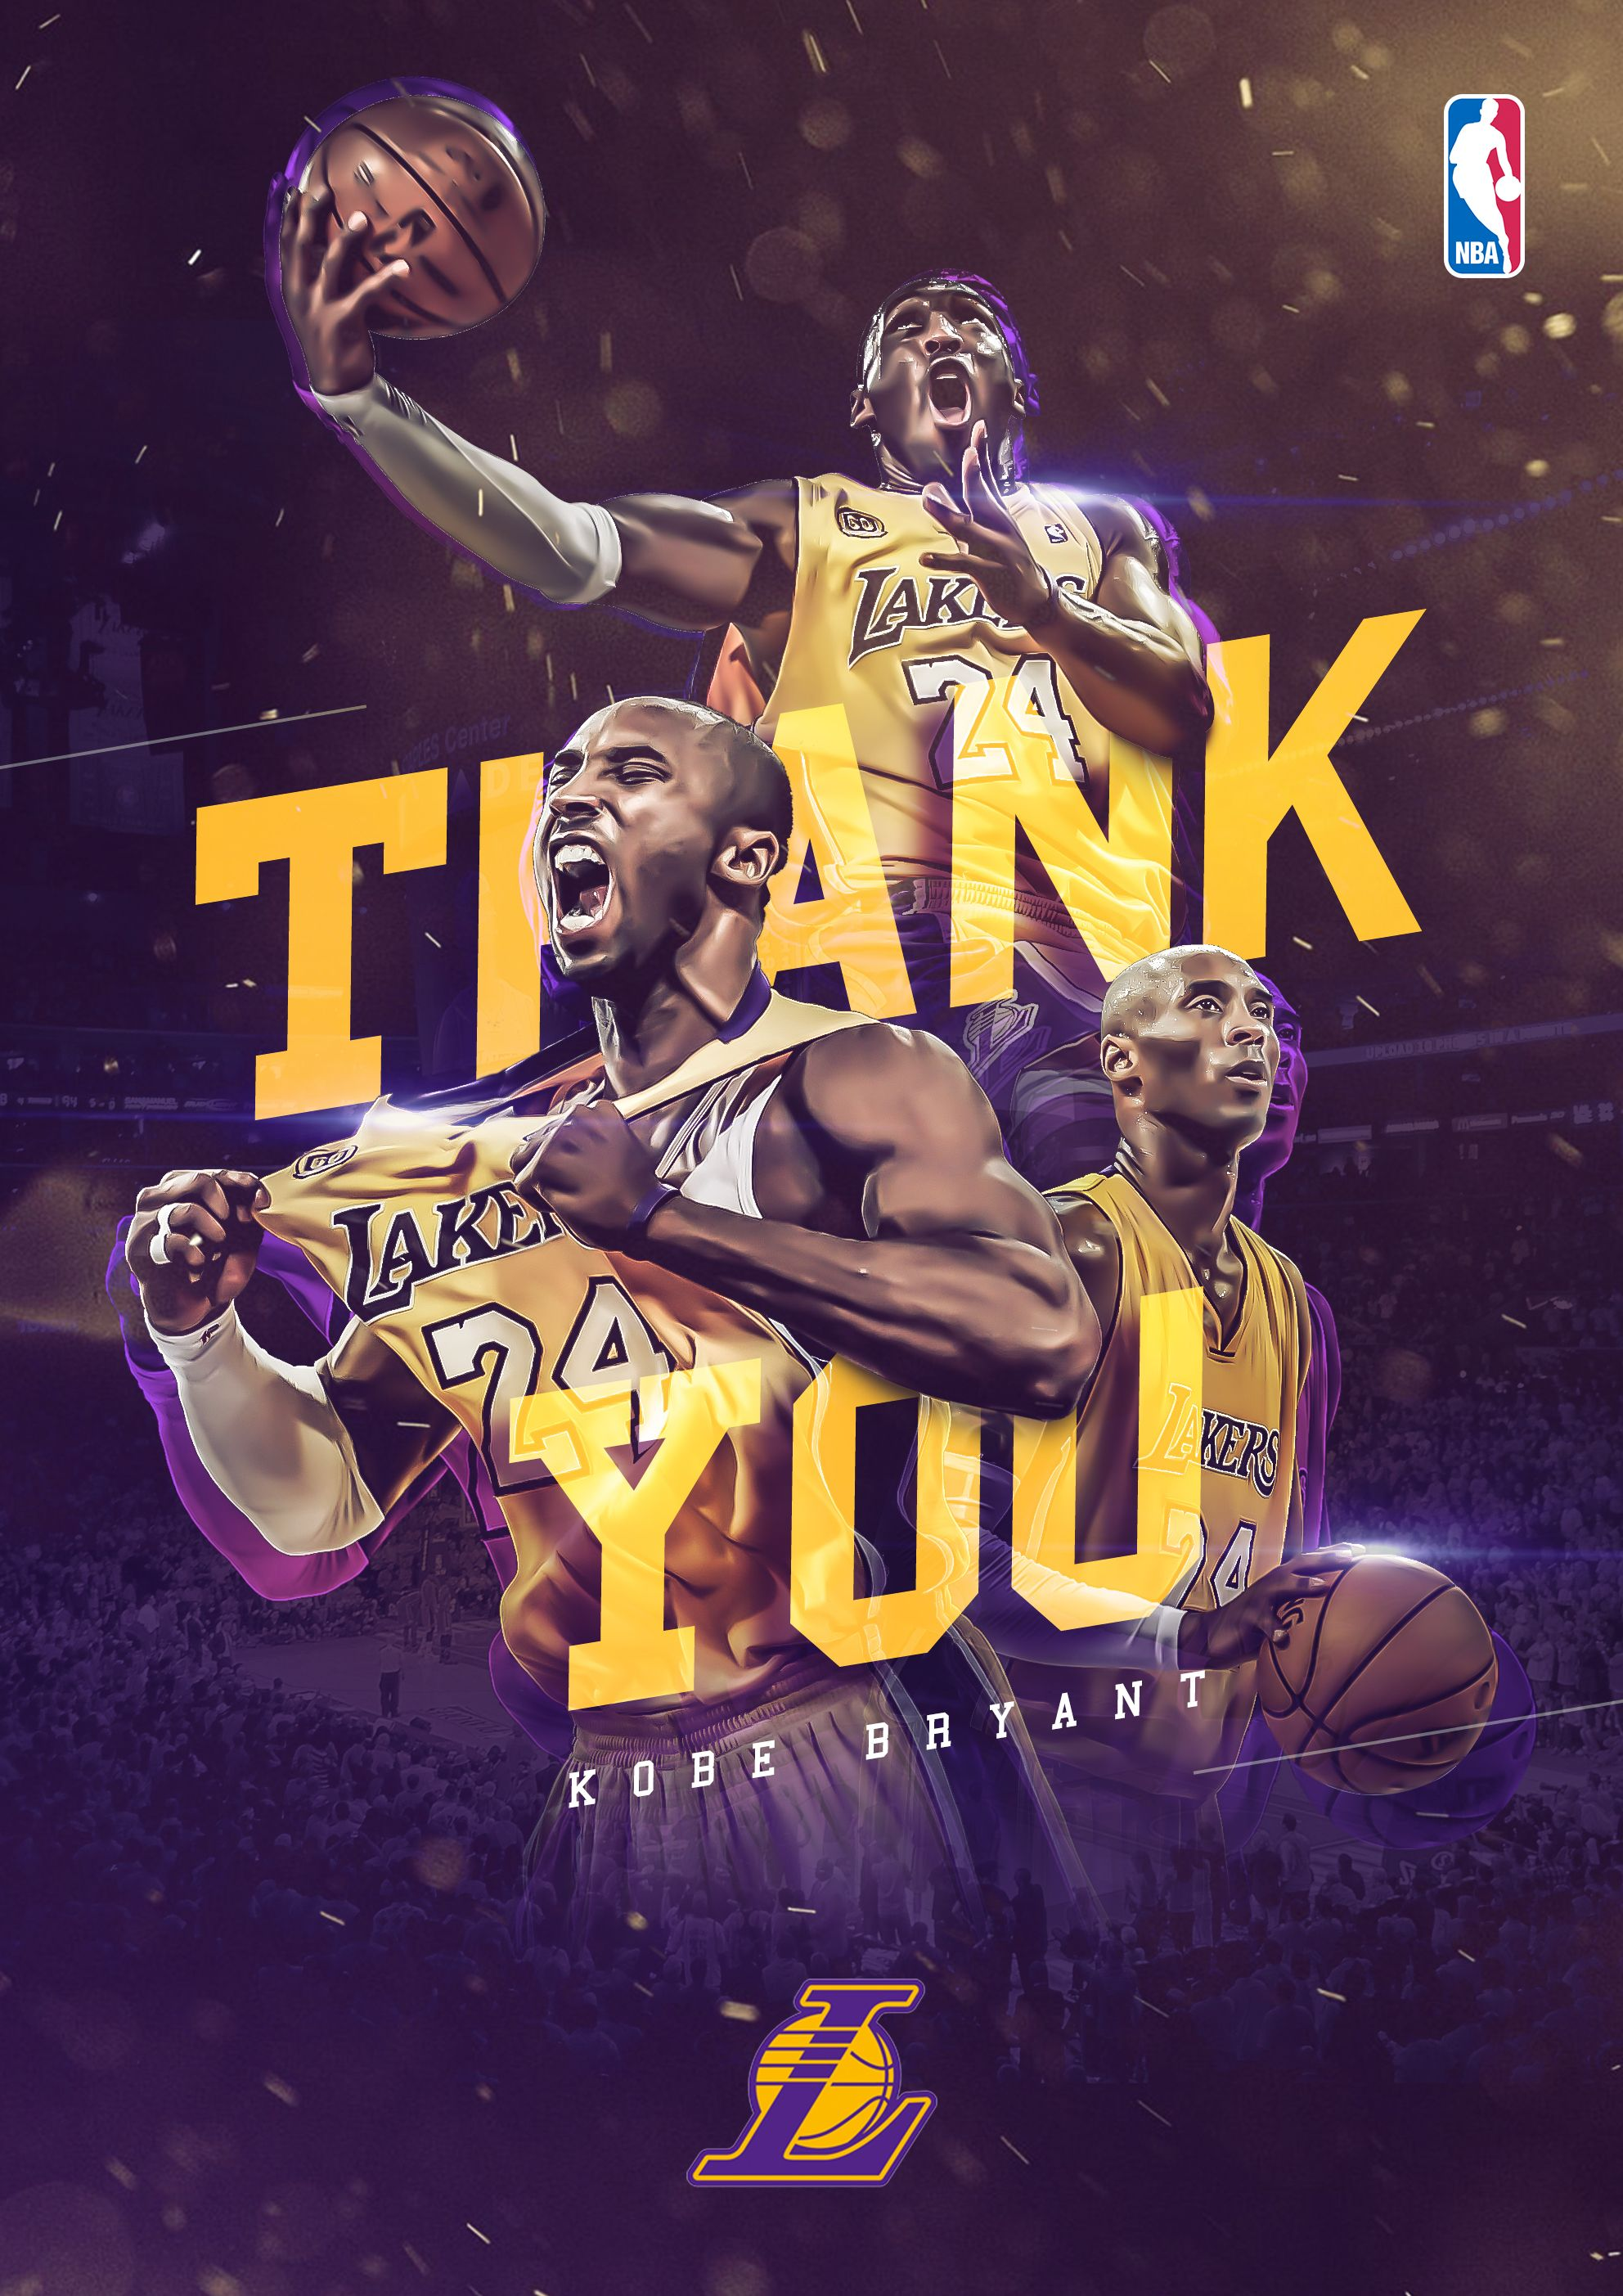 tribute to kobe bryant congratulations on the brilliant career and